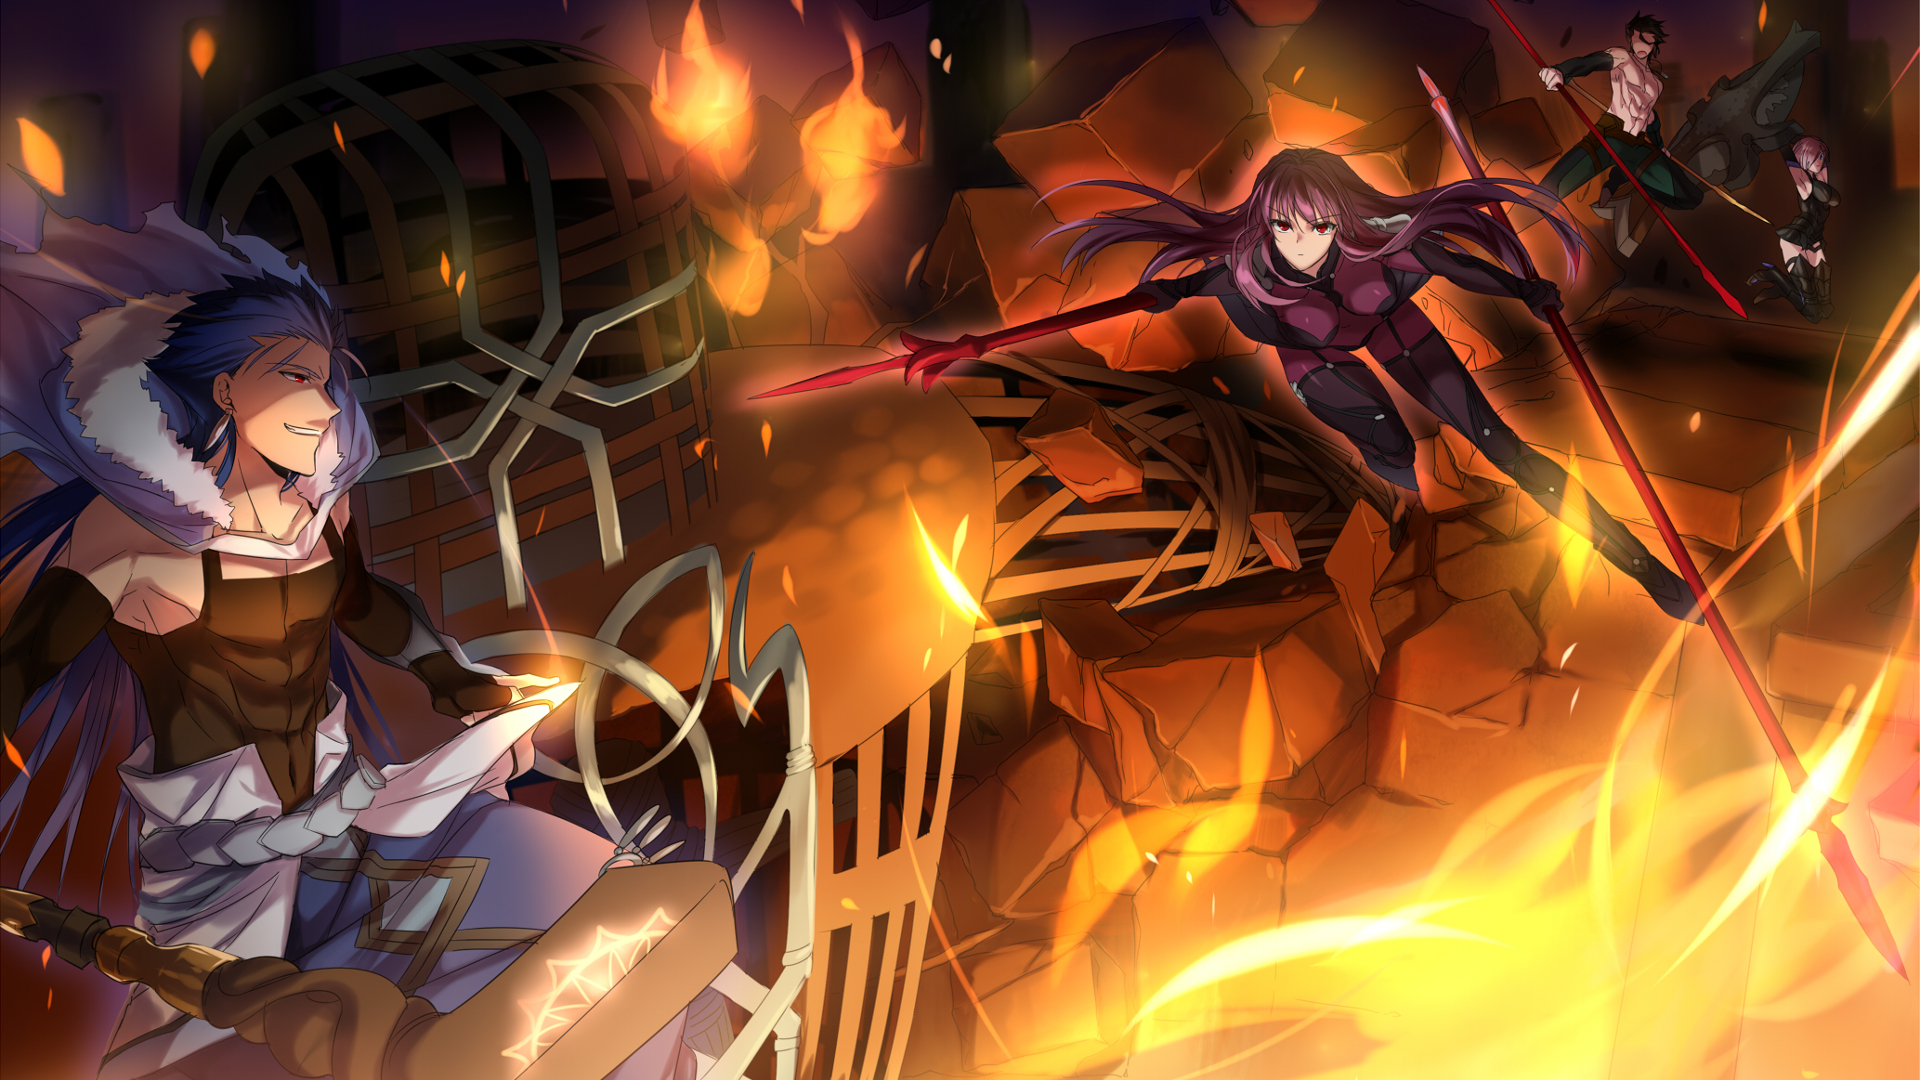 Fate grand order hd wallpaper background image 1920x1080 id 693362 wallpaper abyss - Fate grand order lancer wallpaper ...